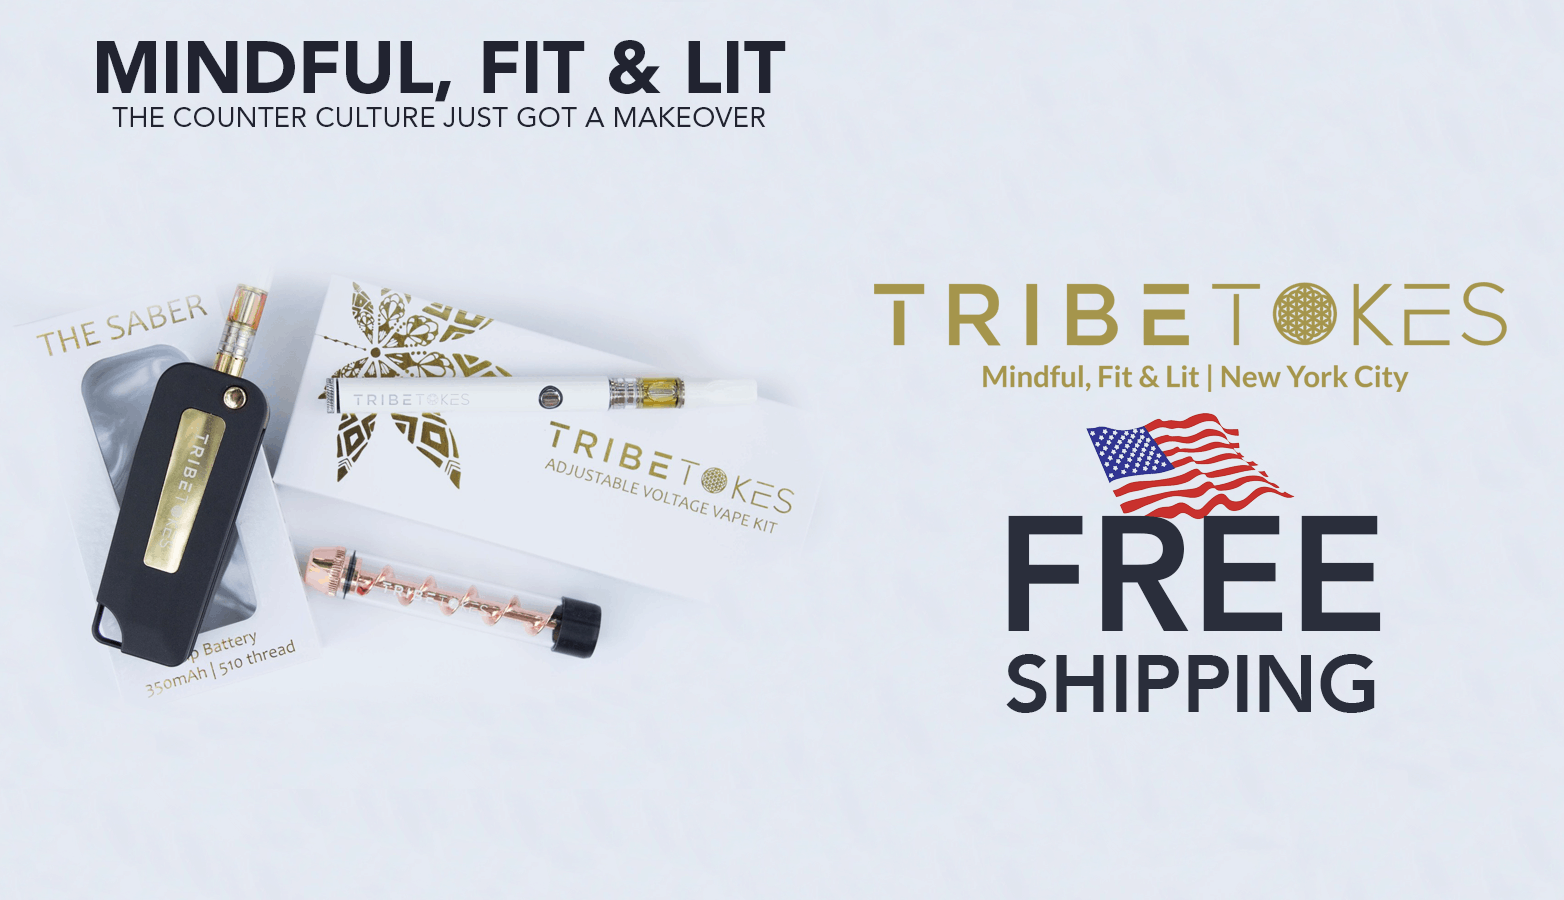 TribeTokes CBD Coupon Code Free Shipping Website